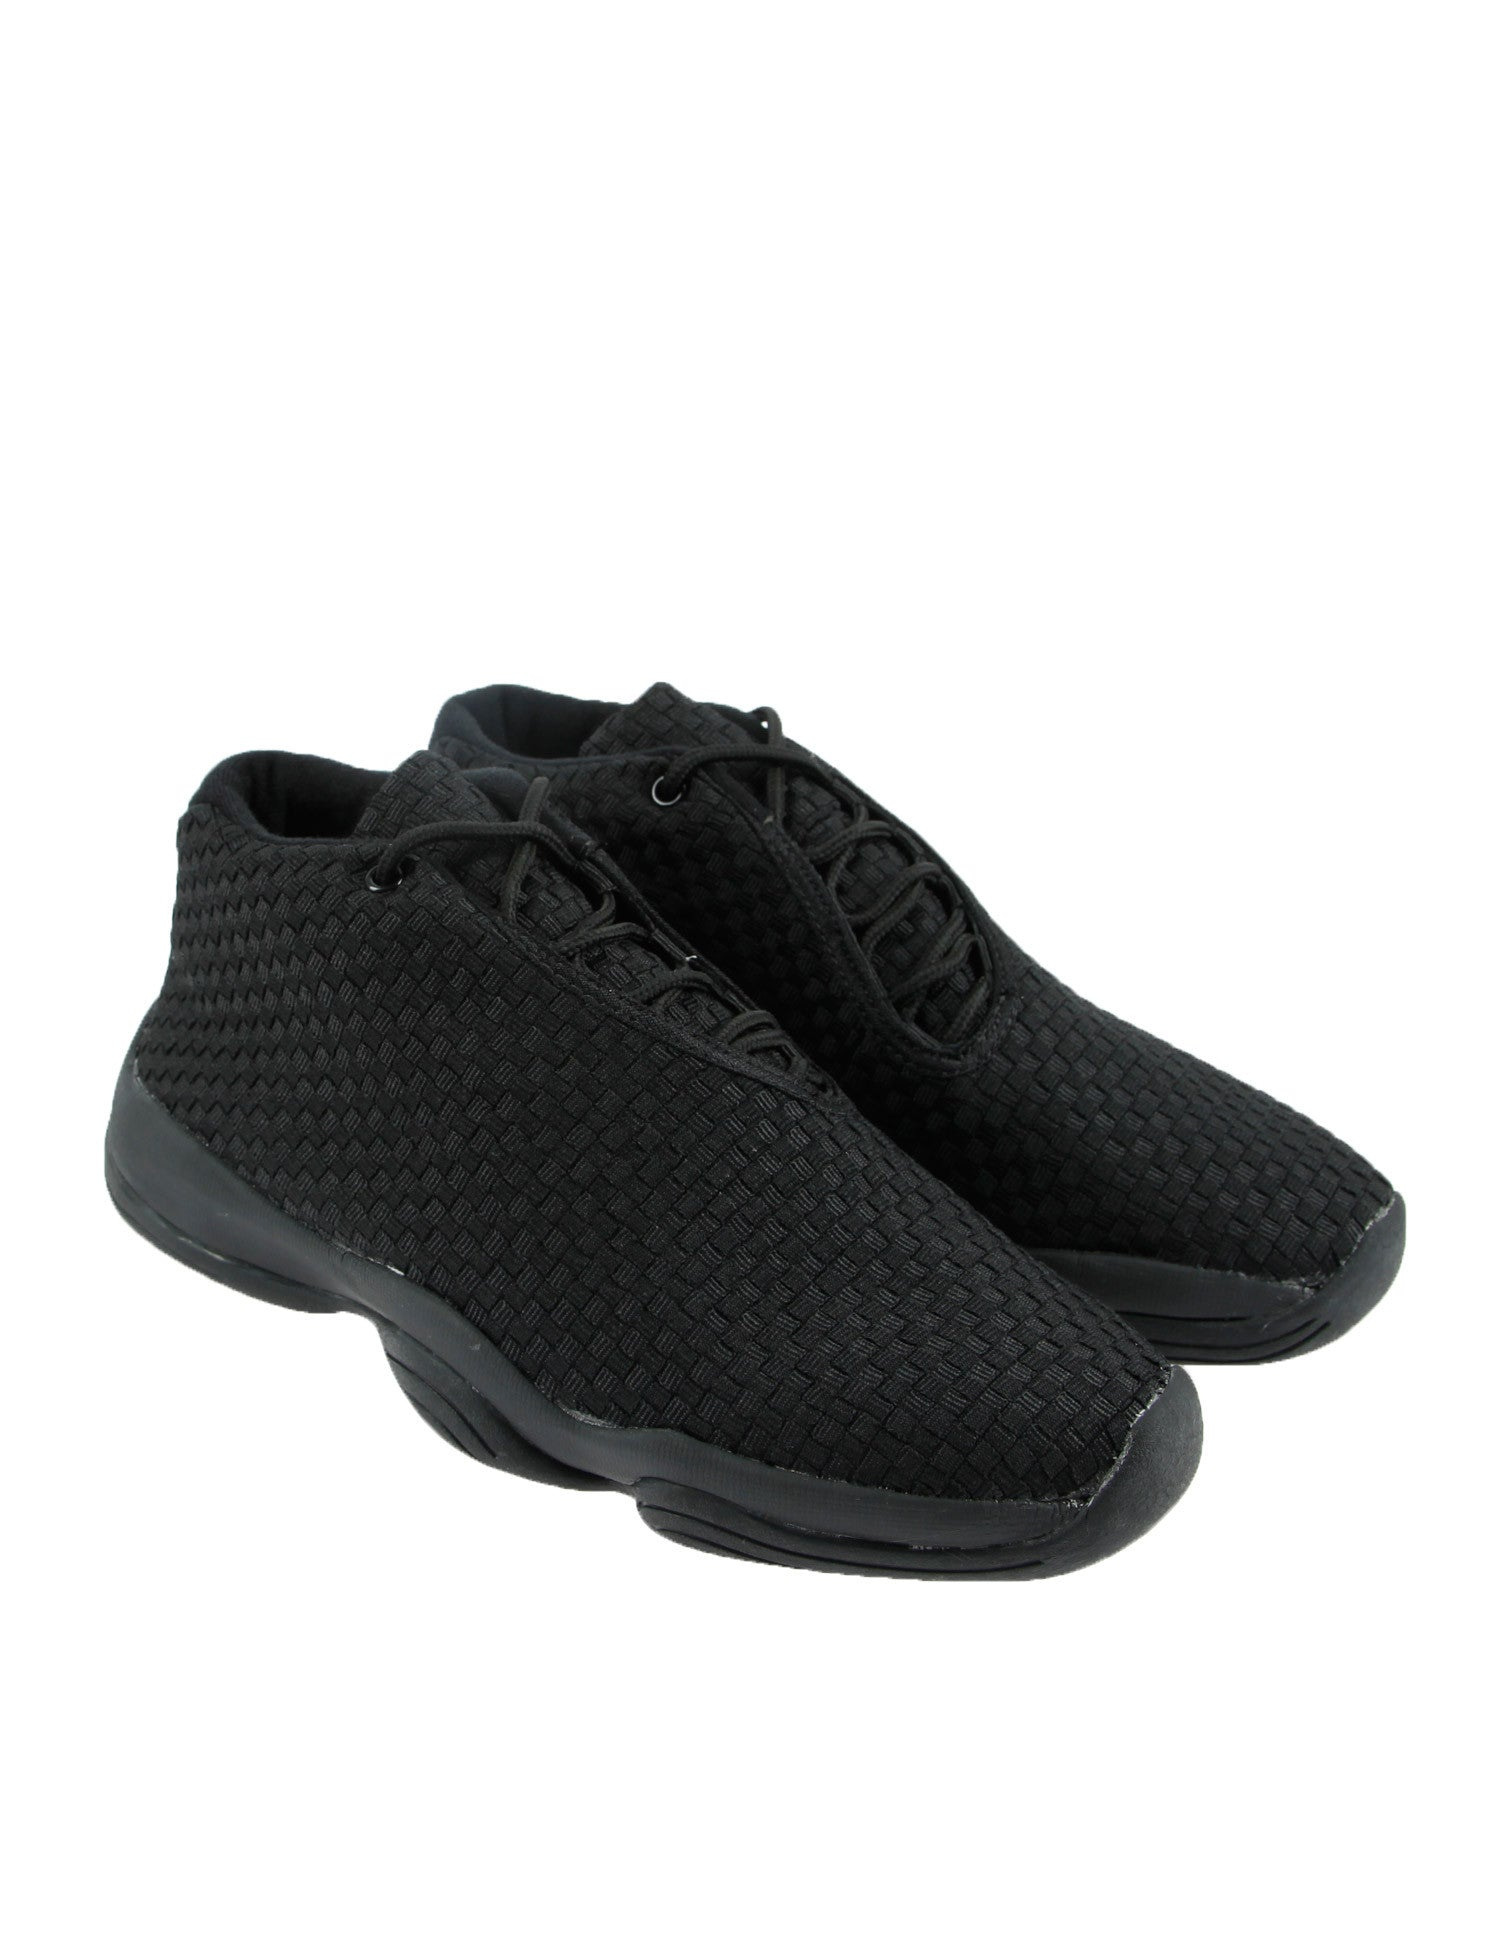 Cultz Shoes 150717 Black